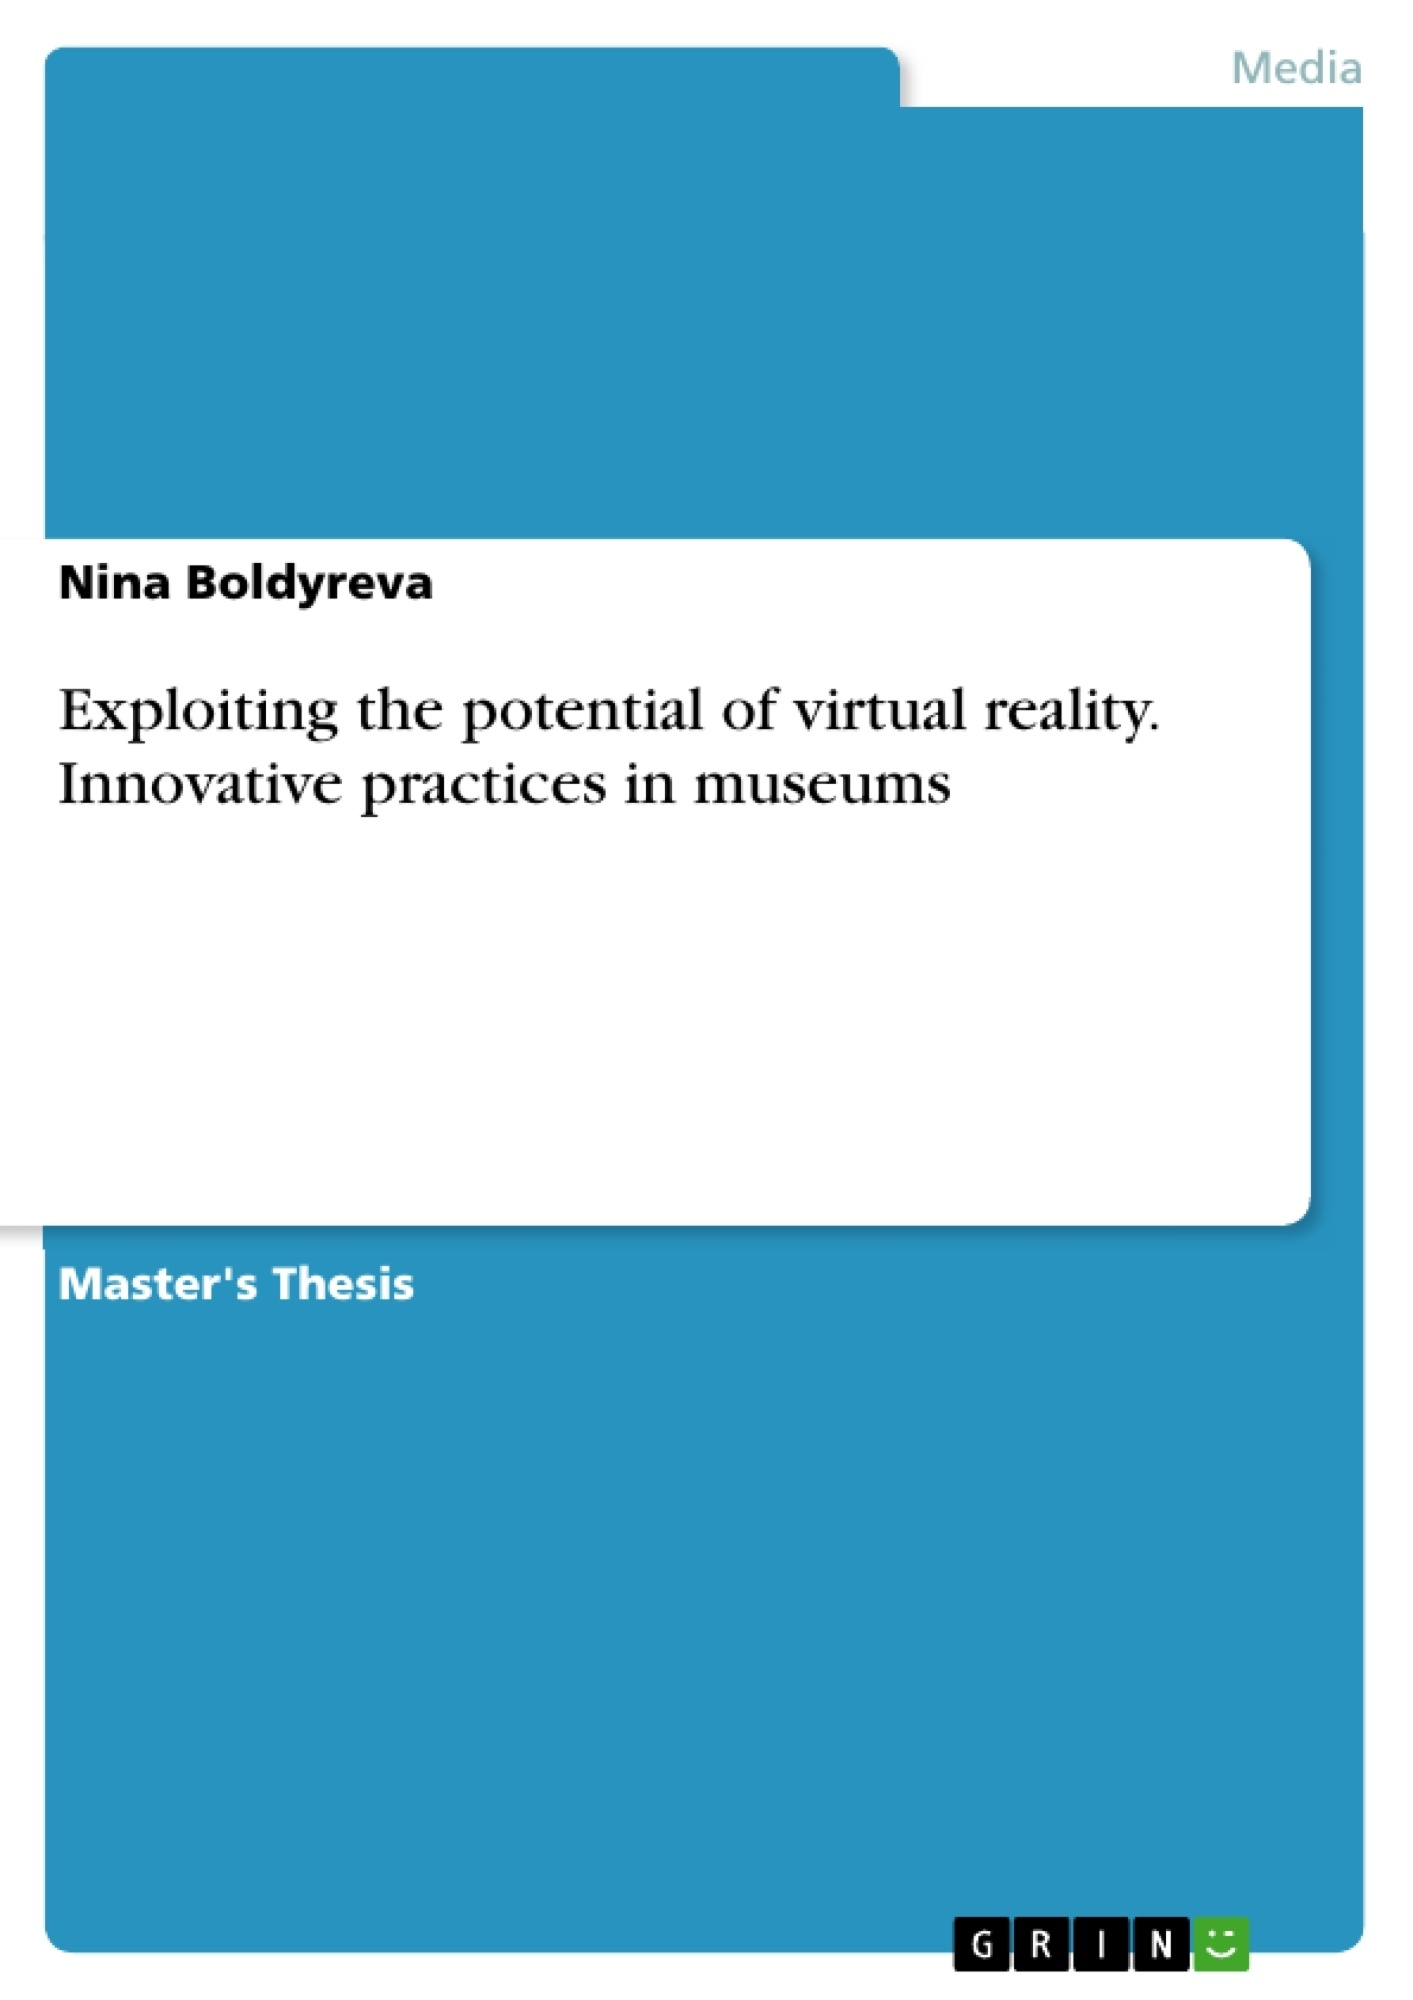 Title: Exploiting the potential of virtual reality. Innovative practices in museums